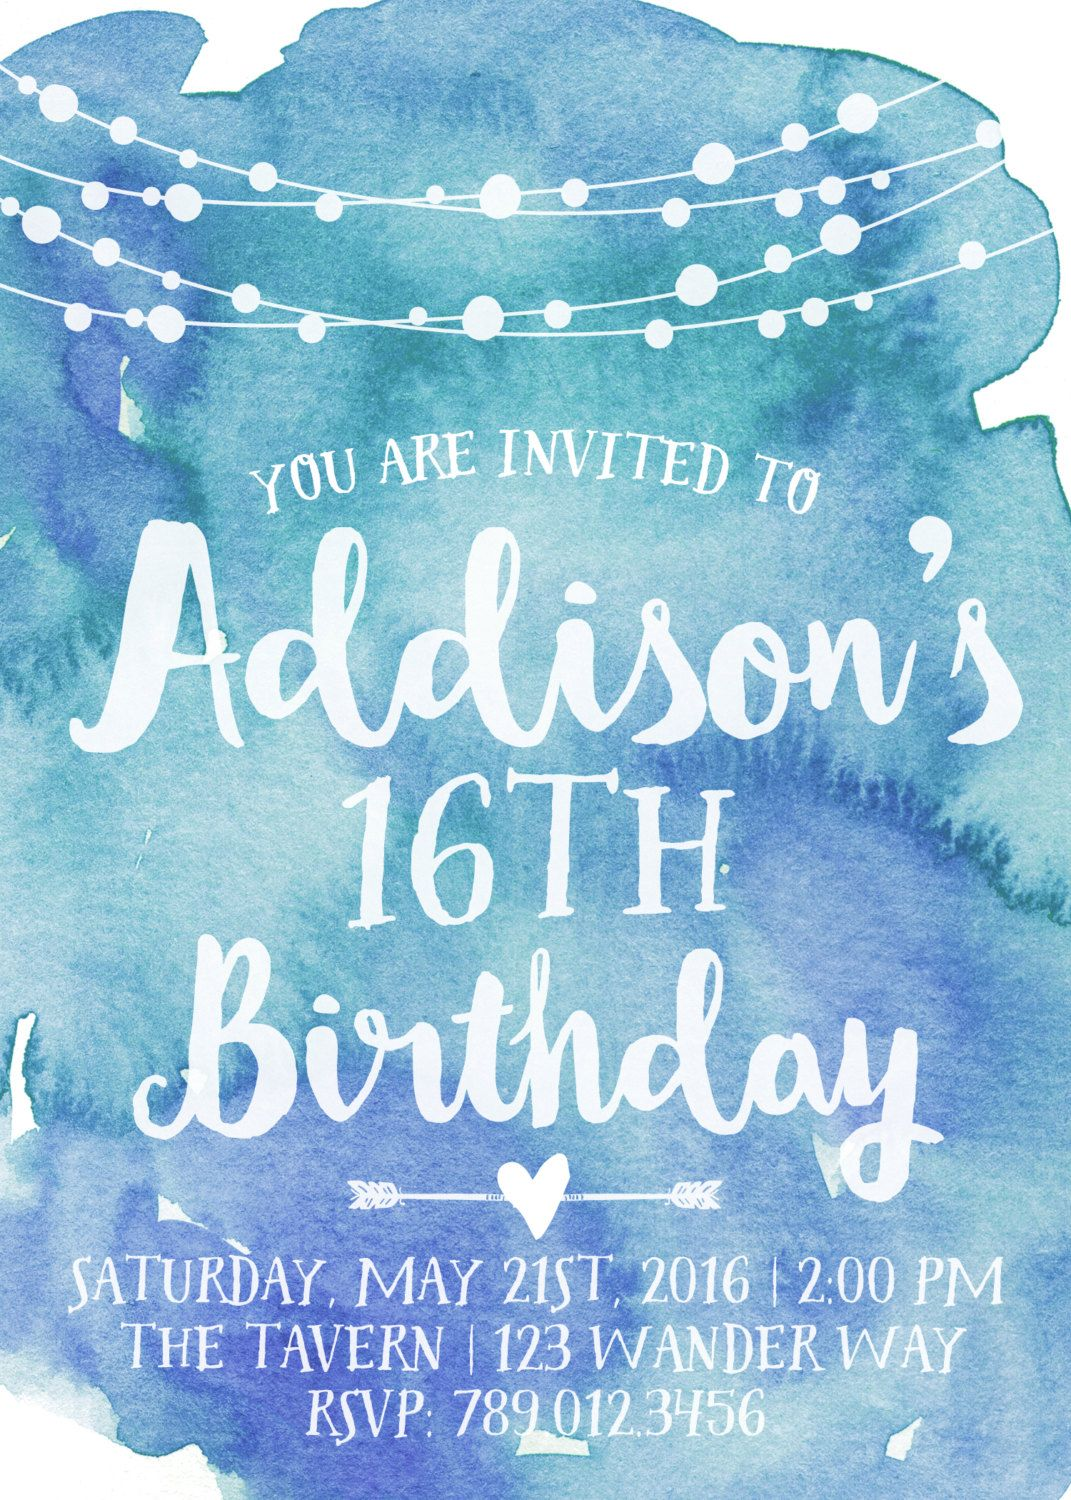 16th birthday party invitation printable watercolor invite boho 16th birthday party invitation printable watercolor invite boho teen bday invite 13th invitations bohemian 14th 15th 17th 18th 21st zeppy filmwisefo